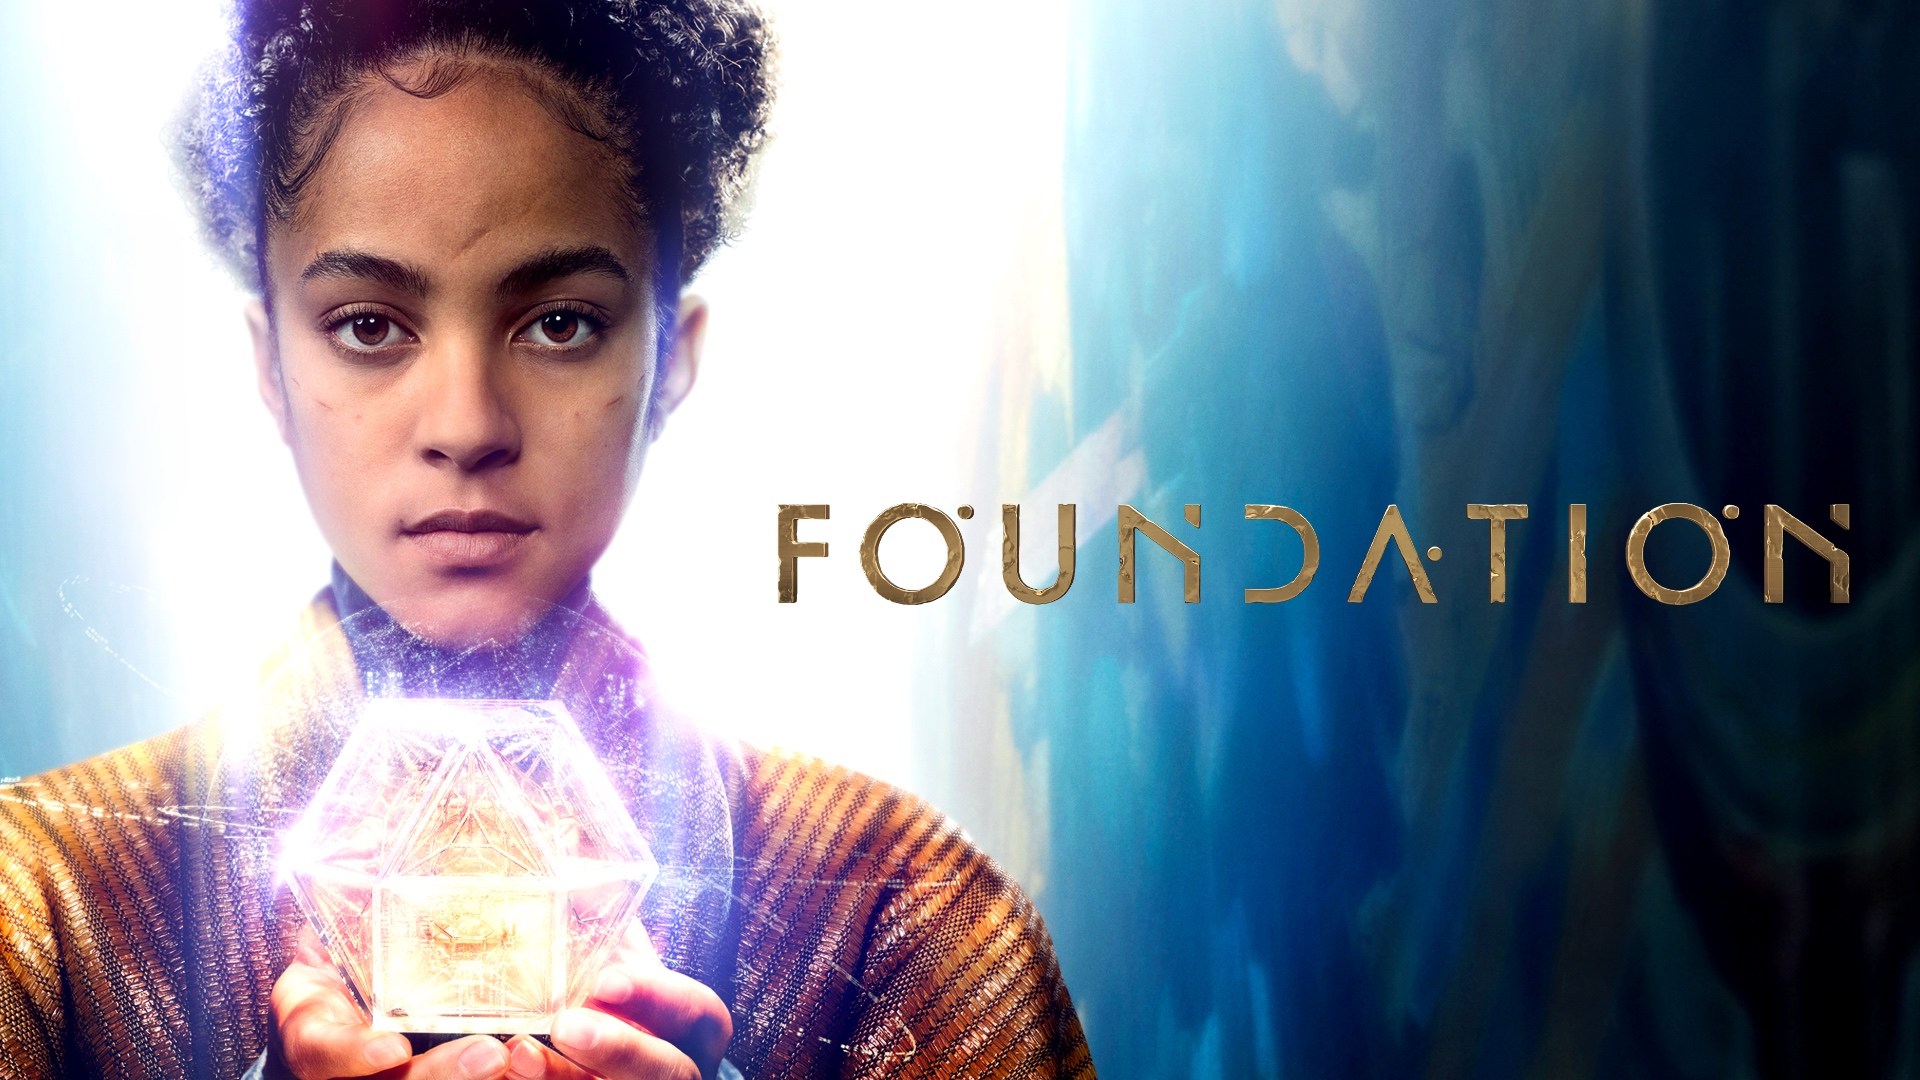 Apple launches 'Foundation: The Official Podcast' ahead of series release on TV+